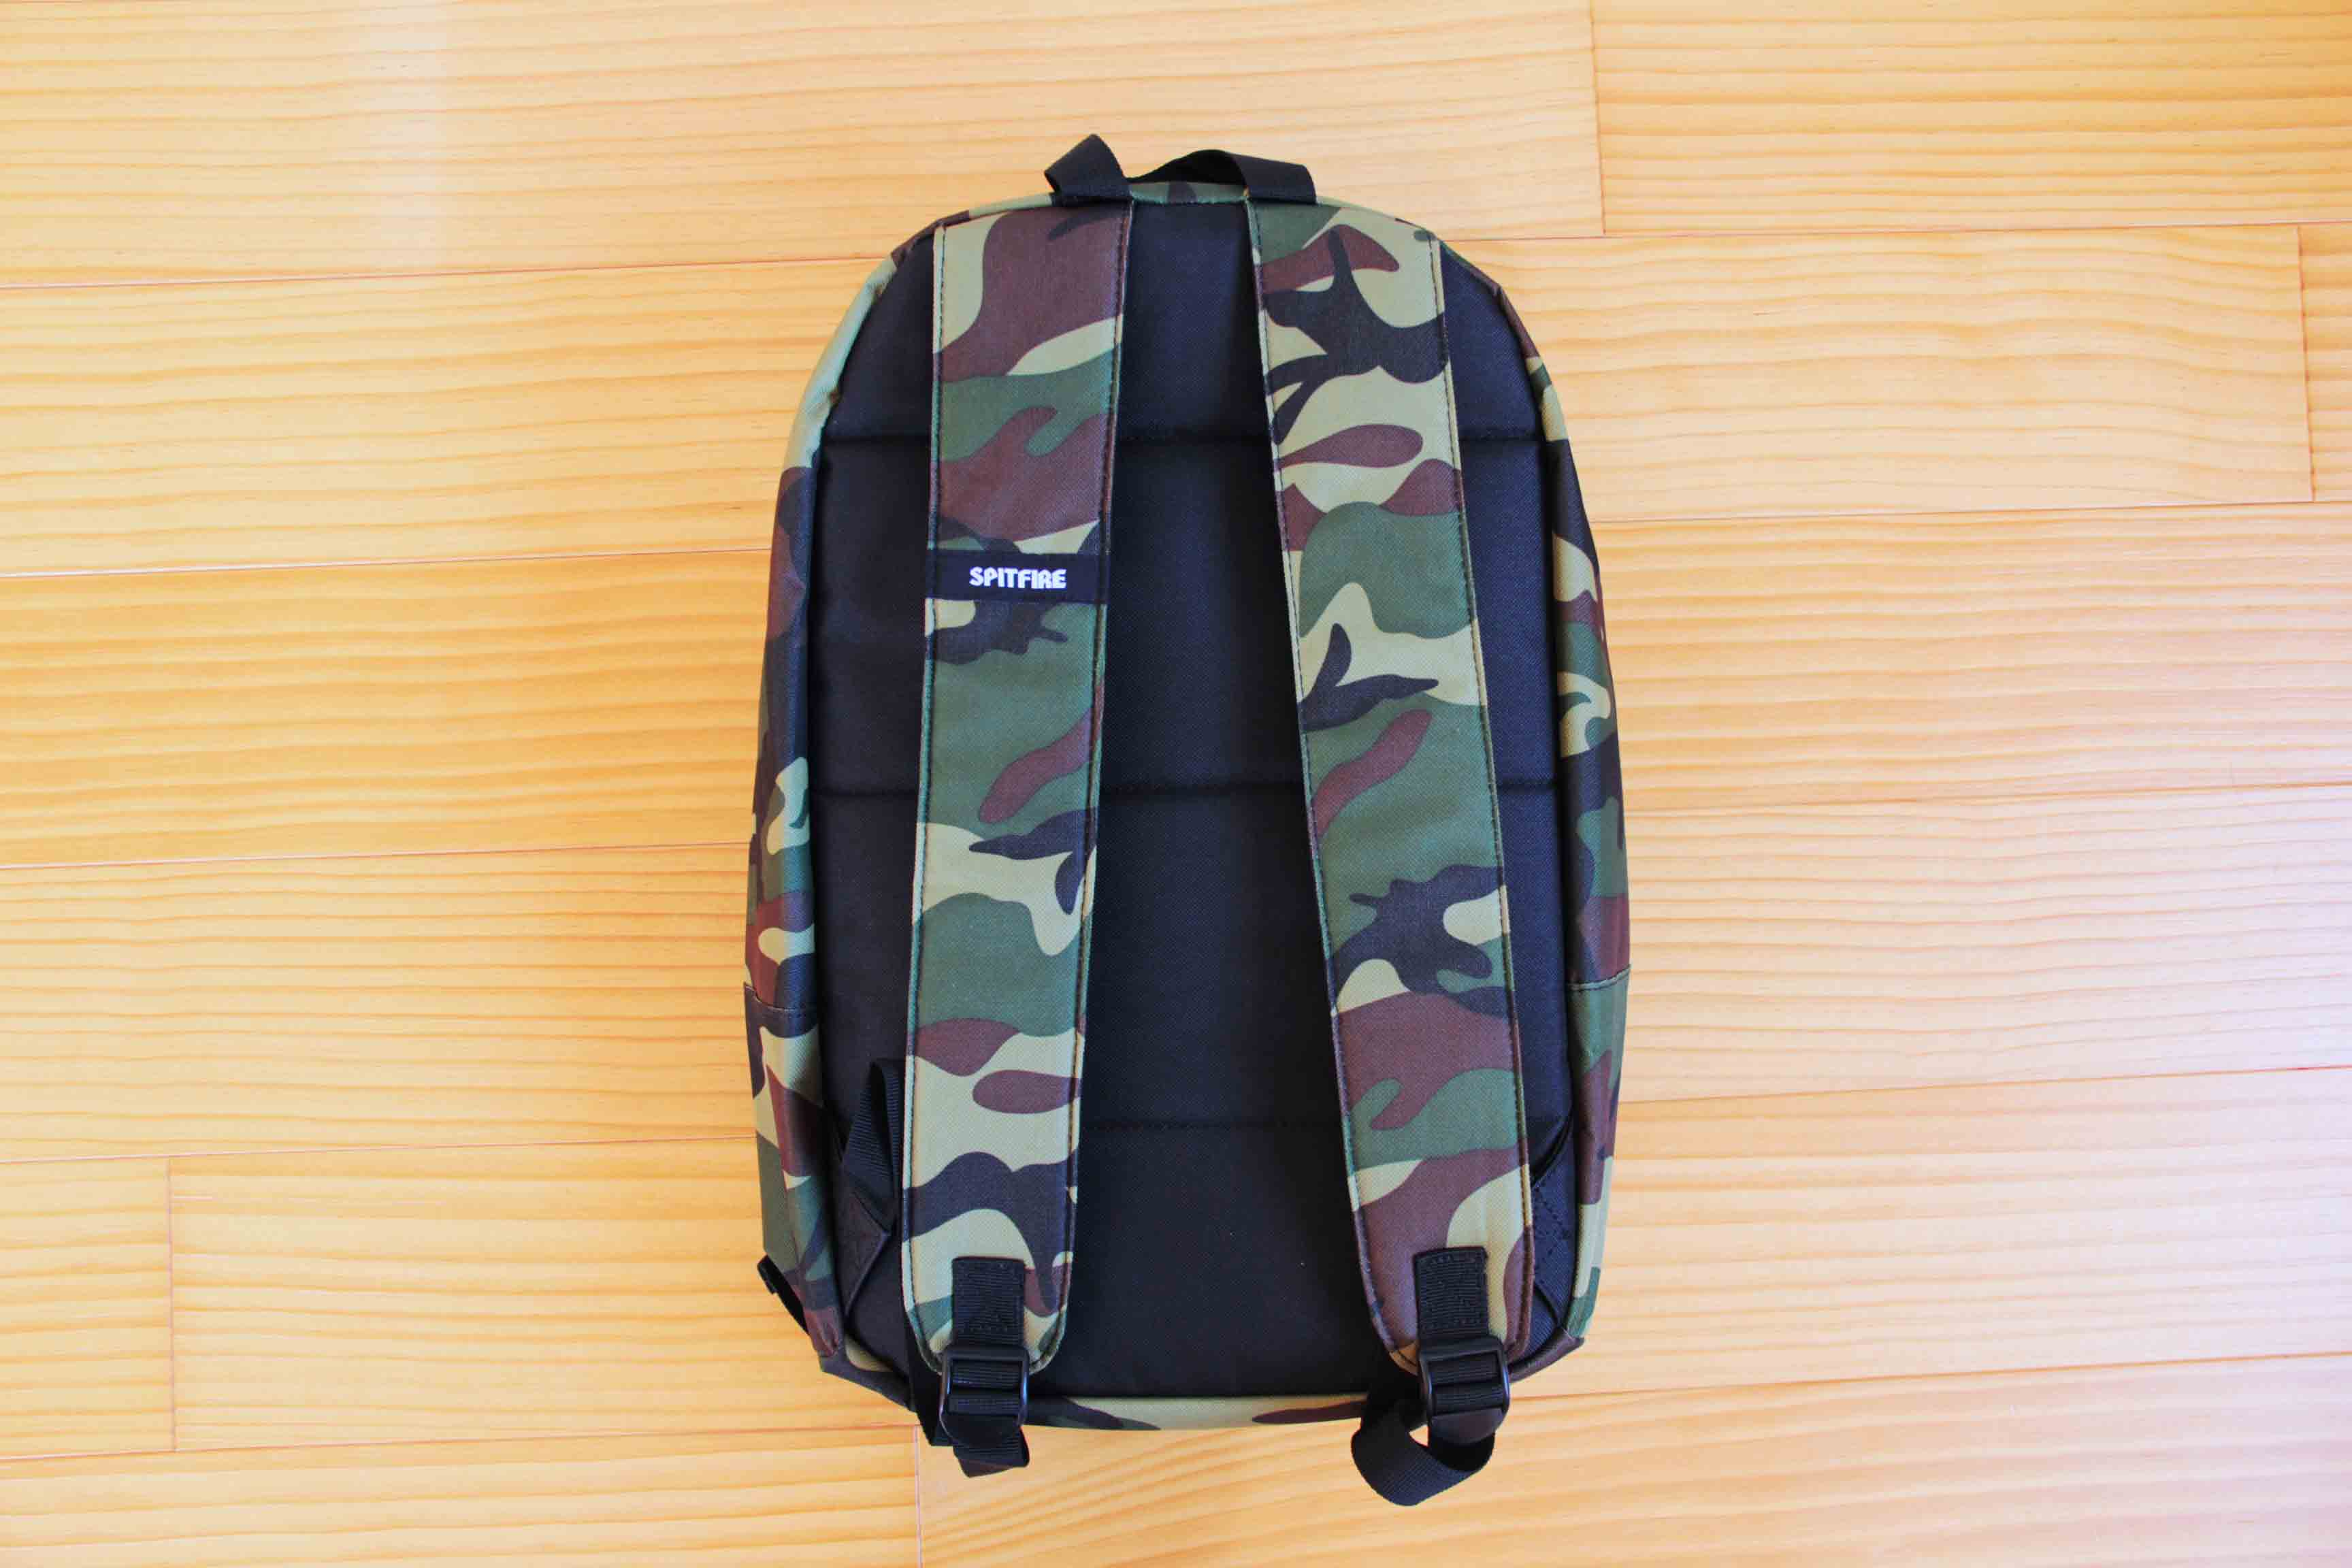 SPITFIRE CLASSIC BACKPACK背面の写真